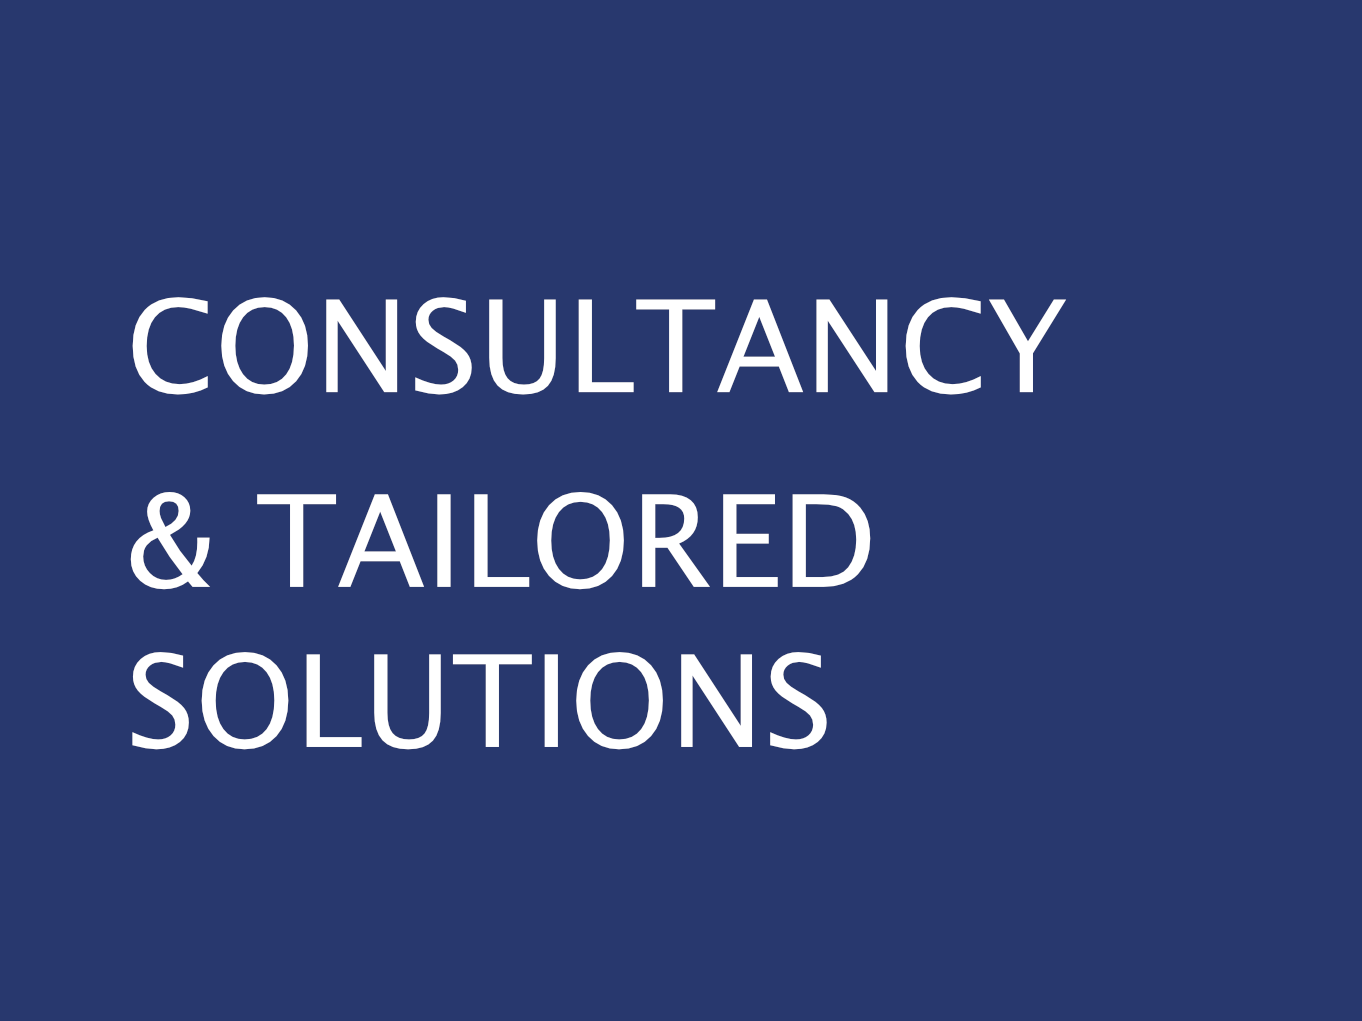 consultancy tailored solutions GWCM